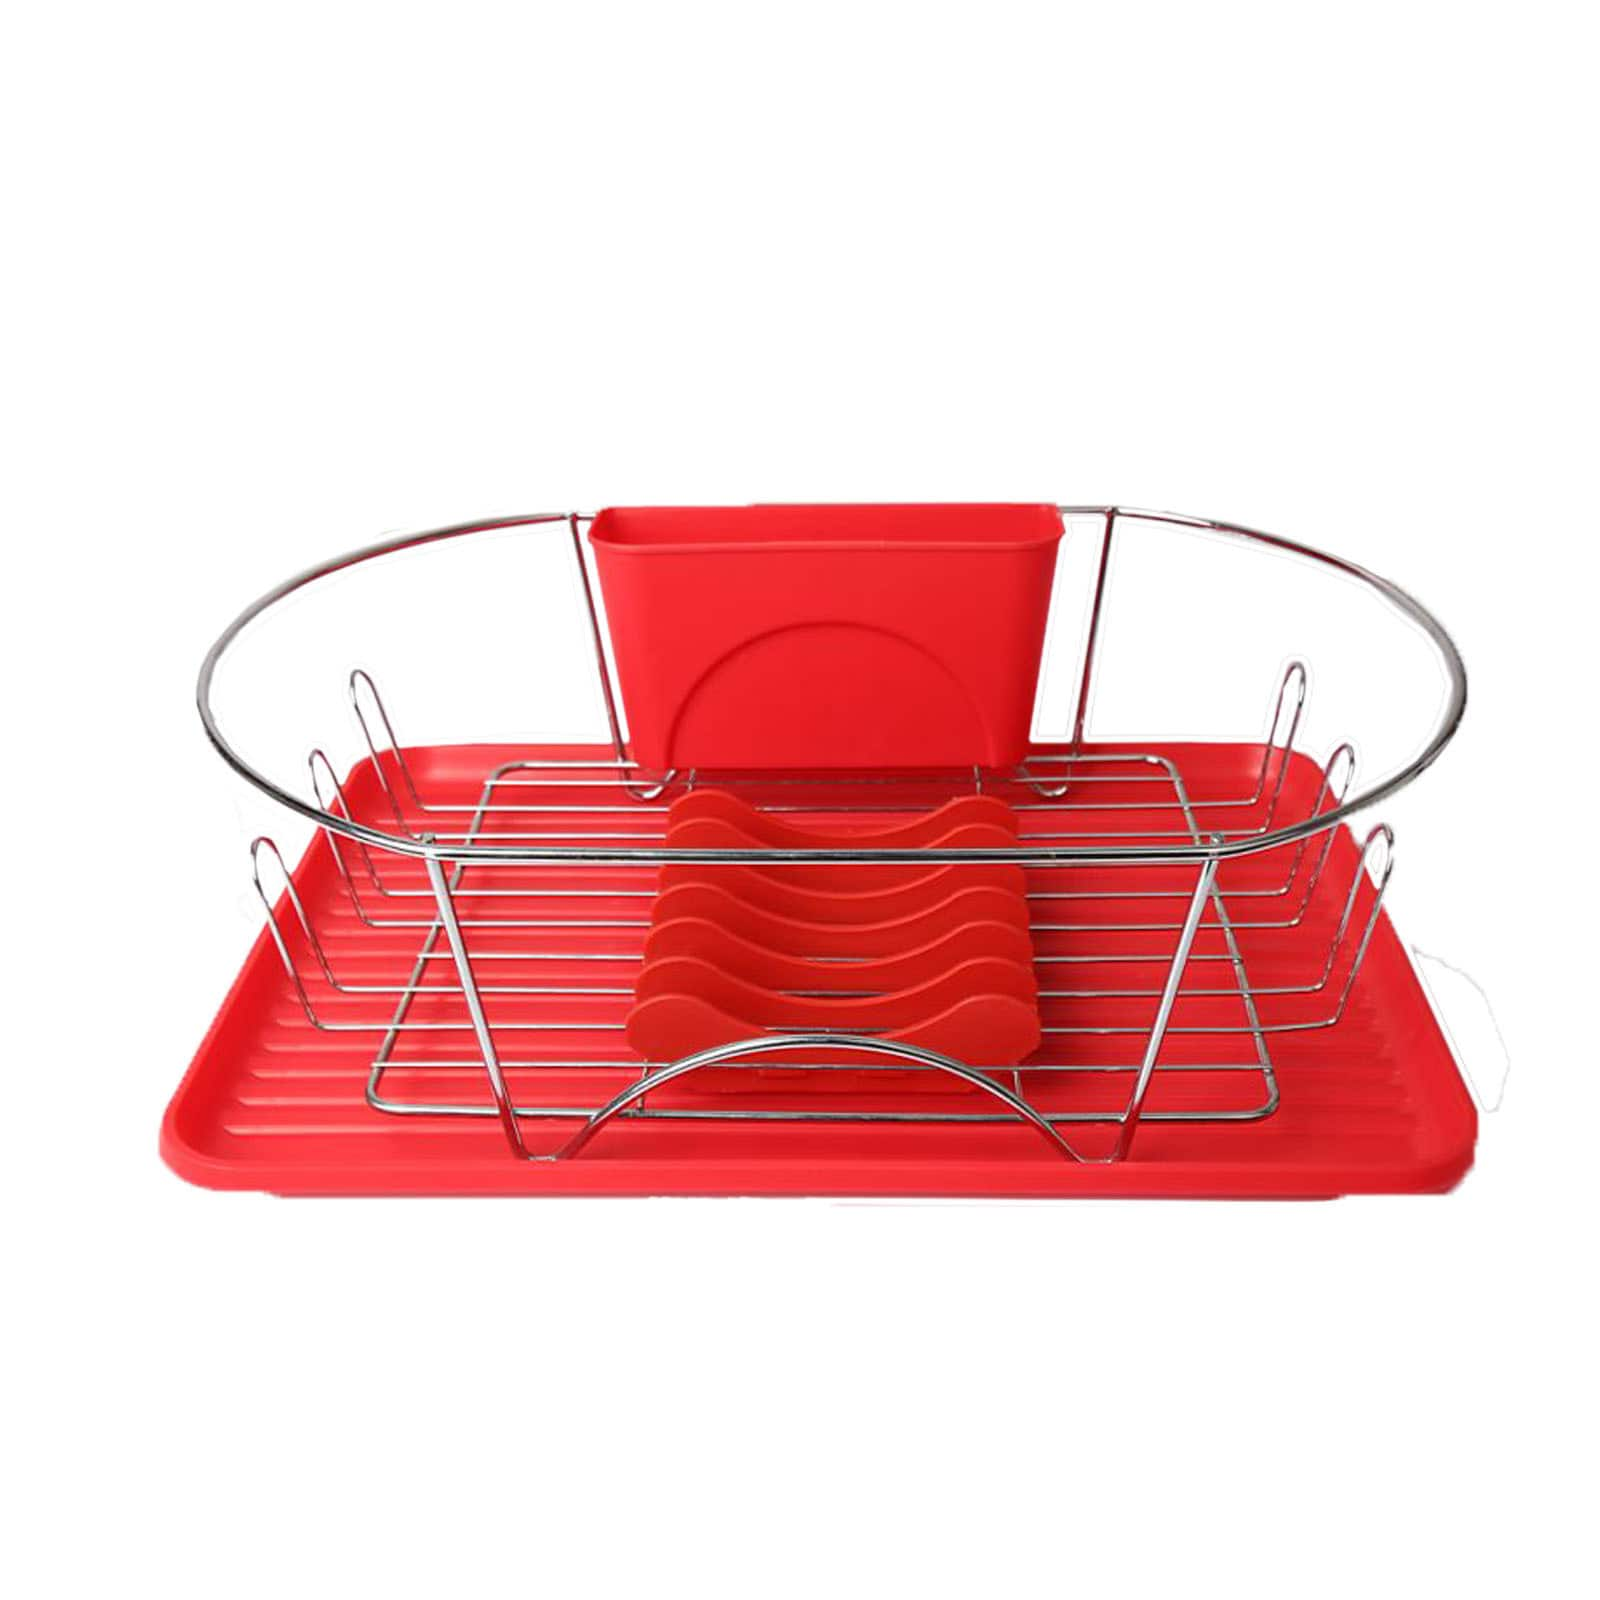 Mega Chef 17 Inch Red Silver Dish Rack by Supplier Generic